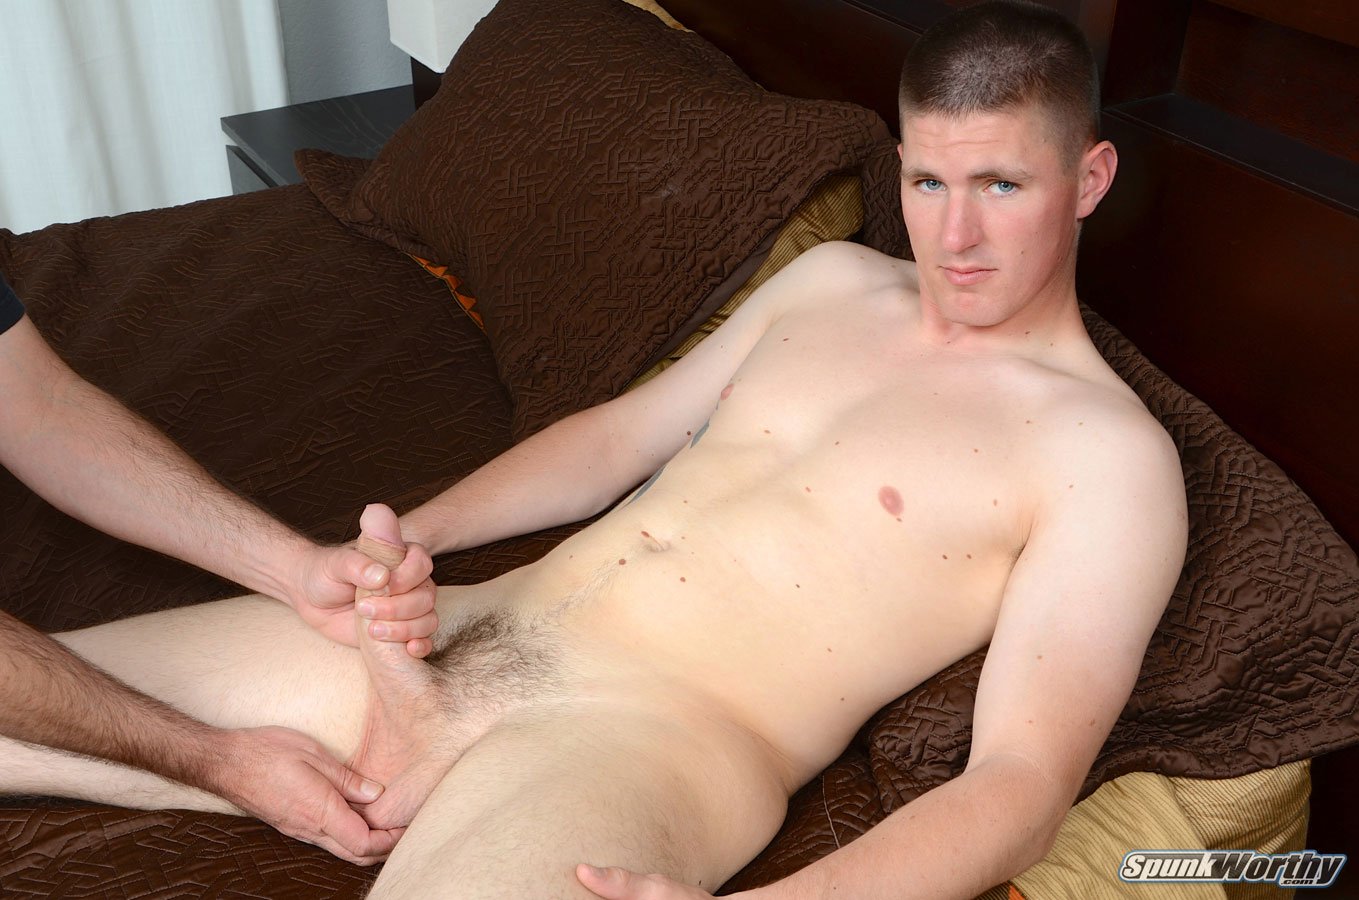 Straight guys handjob gallery gay xxx 6